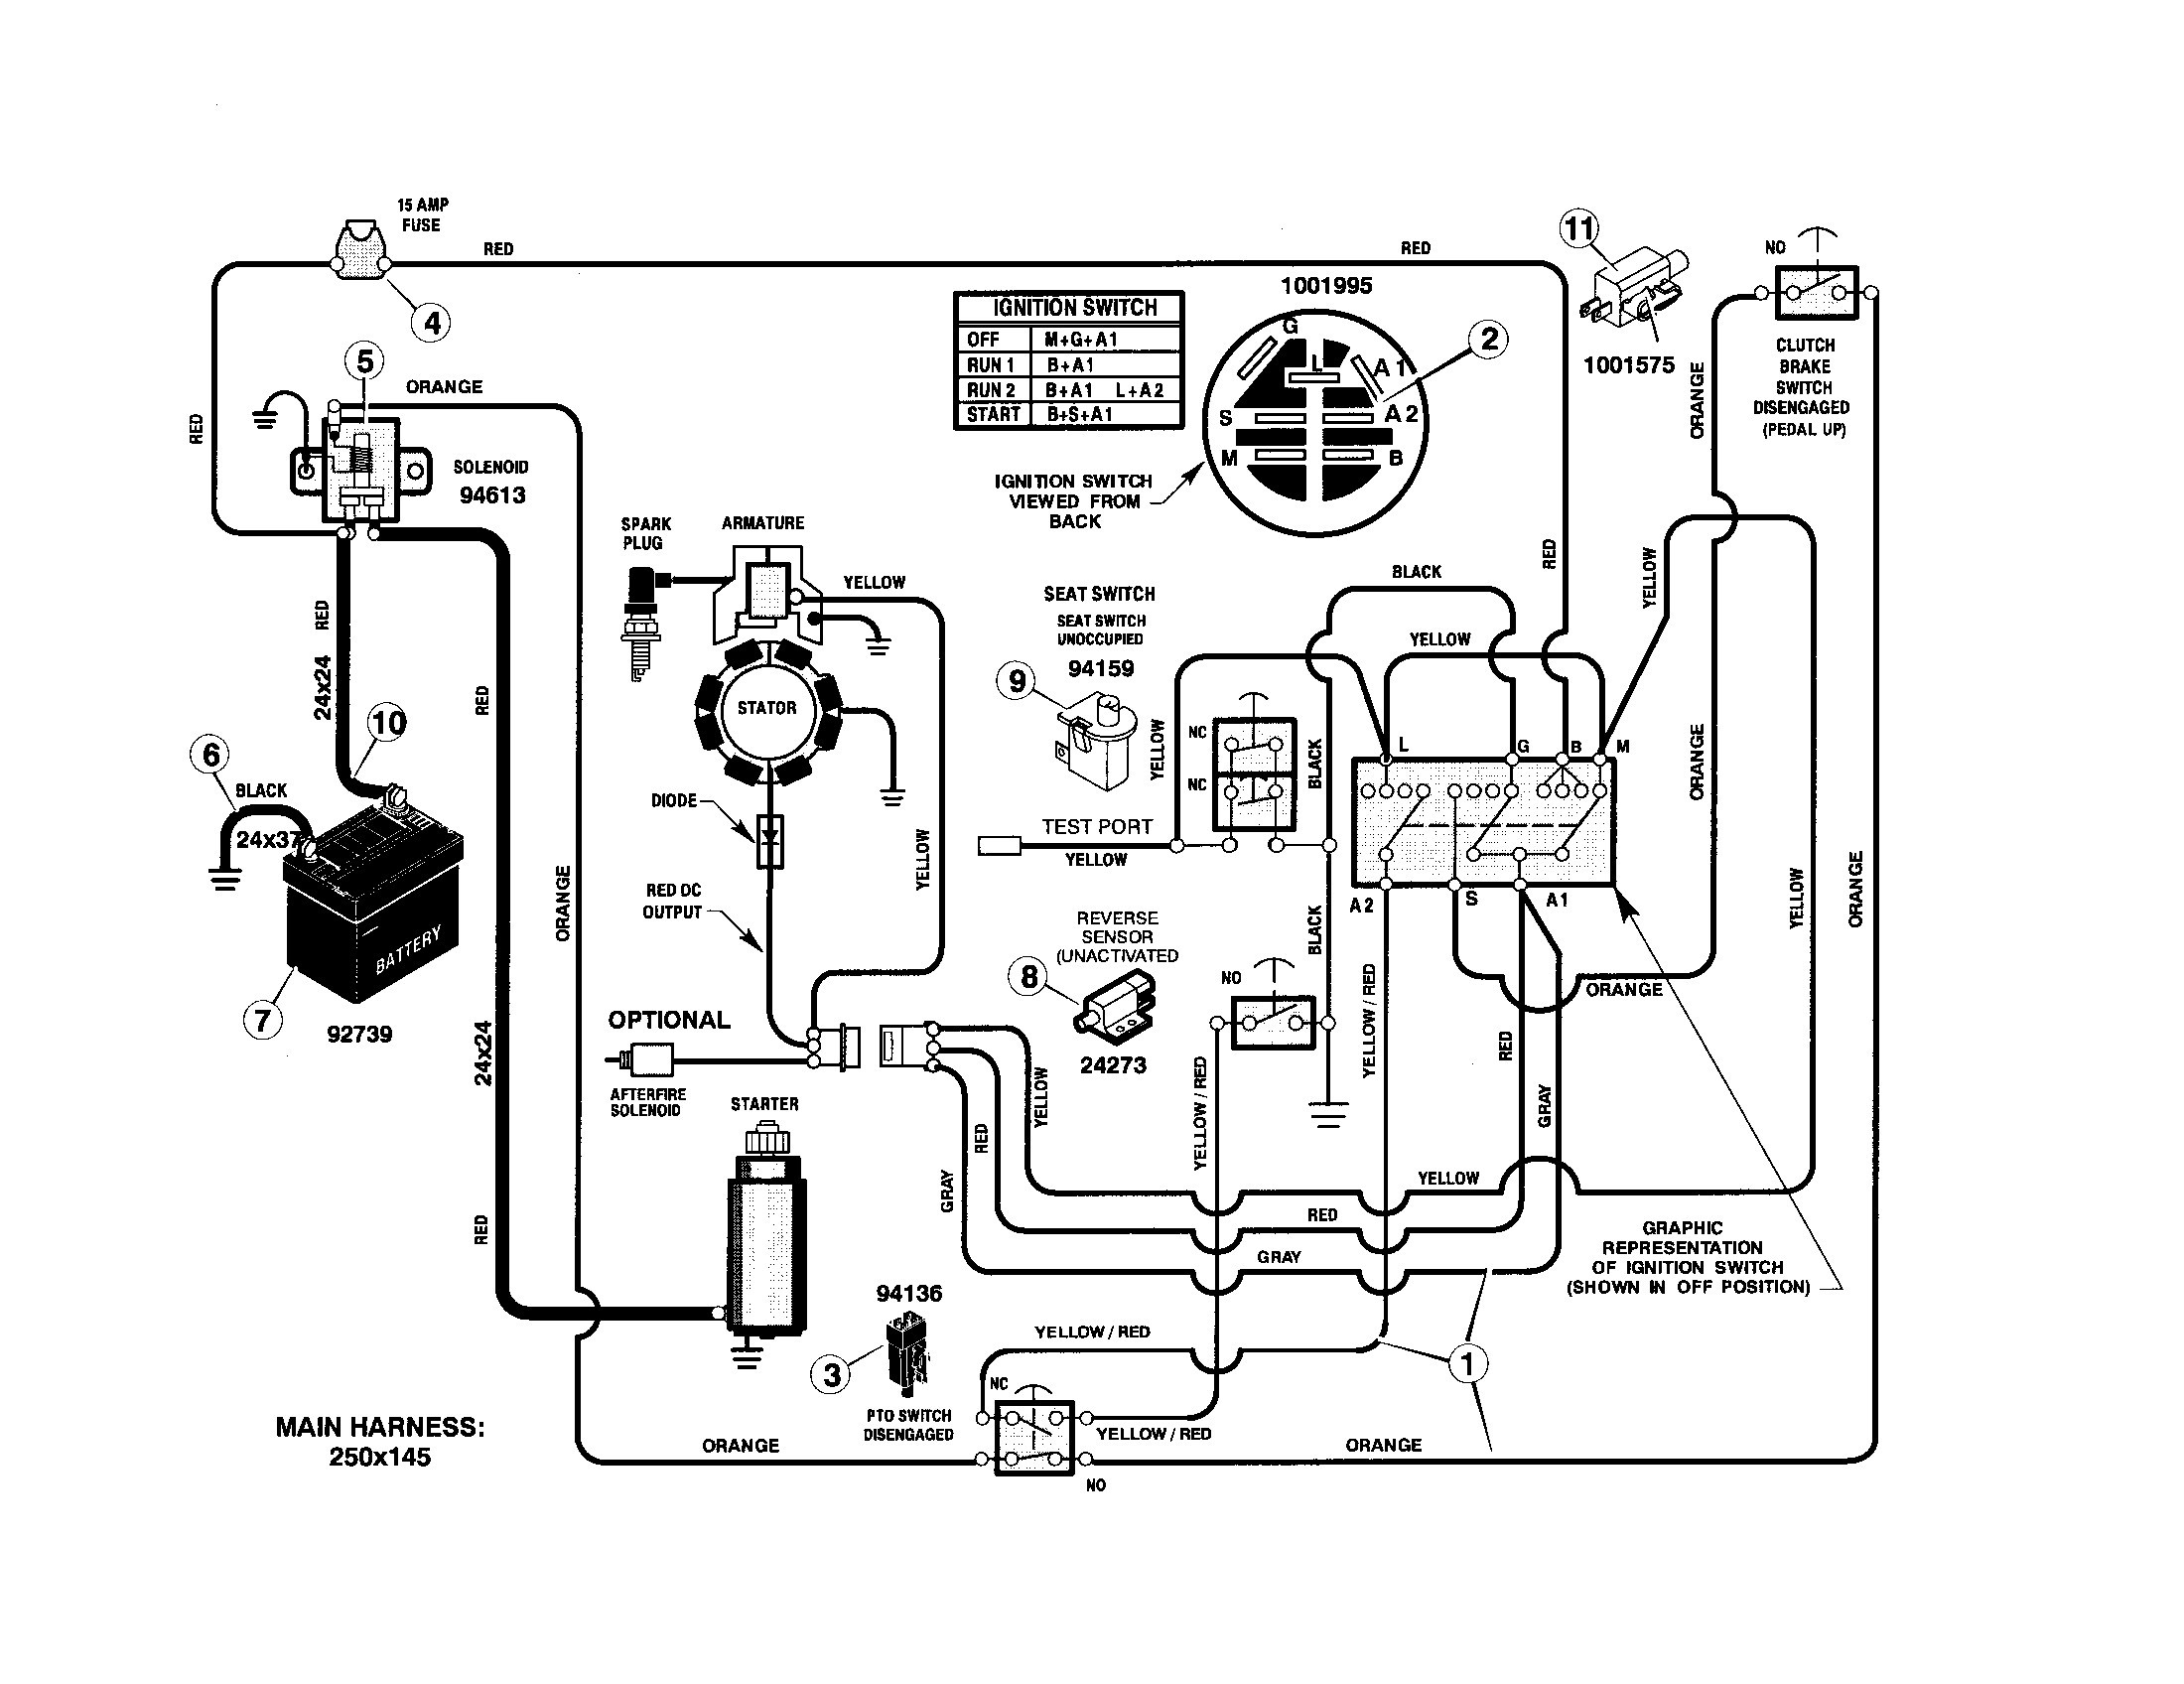 mtd white wiring diagram wiring diagrams  white riding lawn mower wiring diagram #10